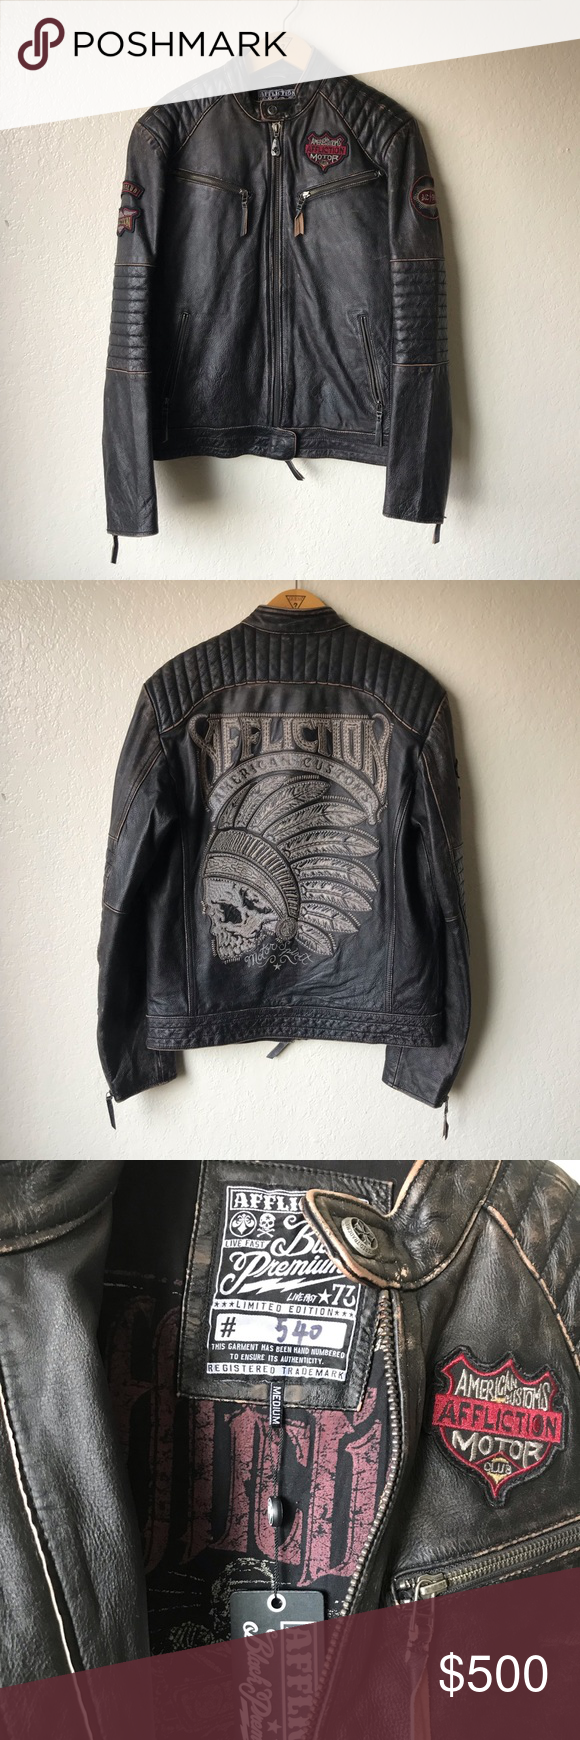 NWT Affliction Leather Jacket Men's Sz M •Size M •Open to